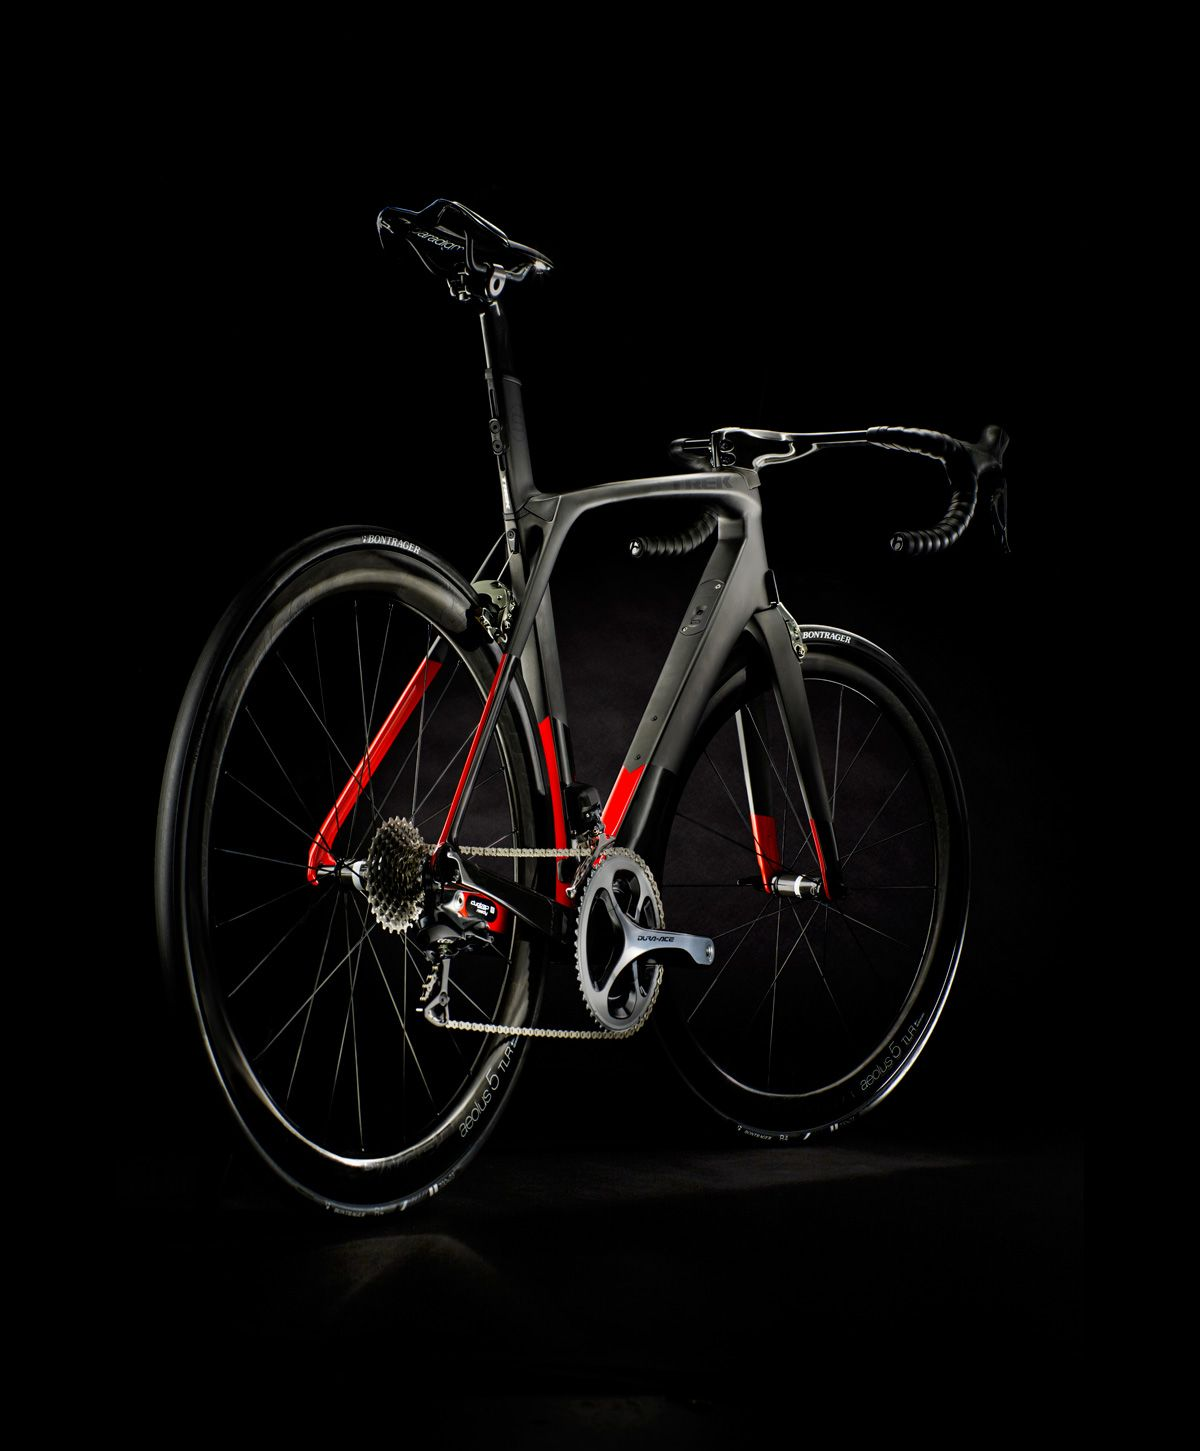 TK16_P1_Madone_Beauty_09_edit | Bike Vanity Race Bike